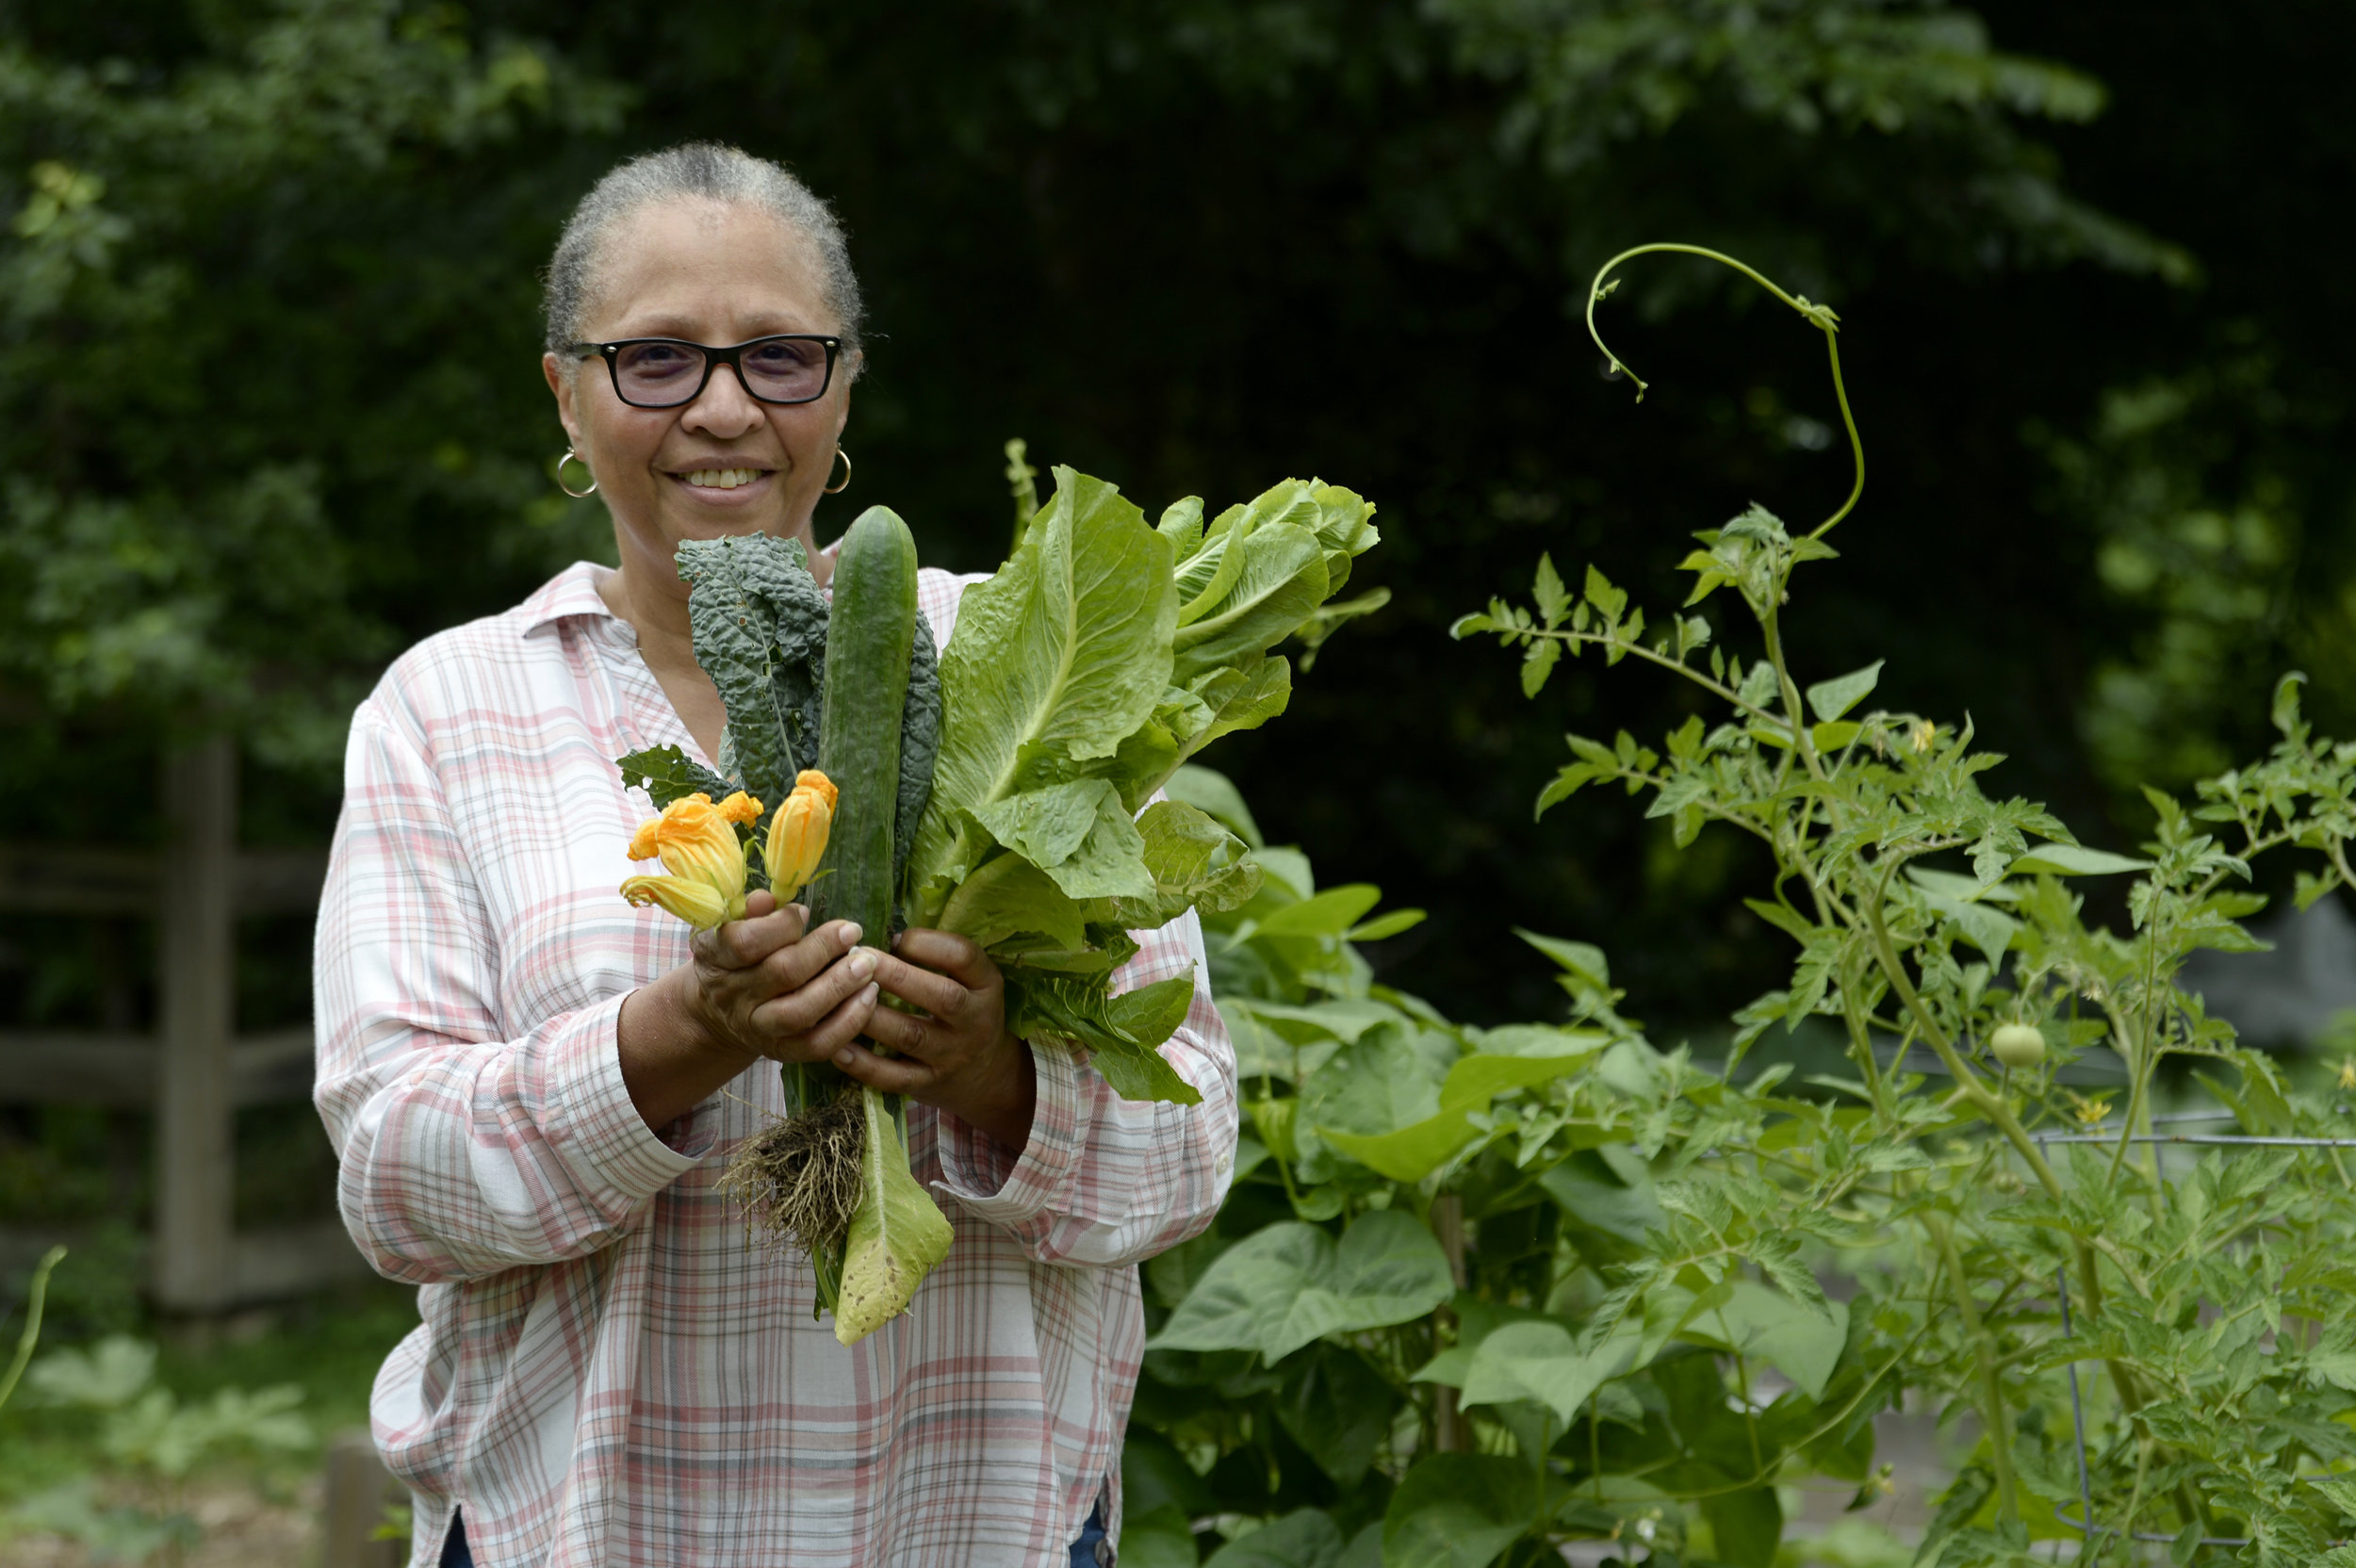 Barbara in the garden with her most recent harvest.